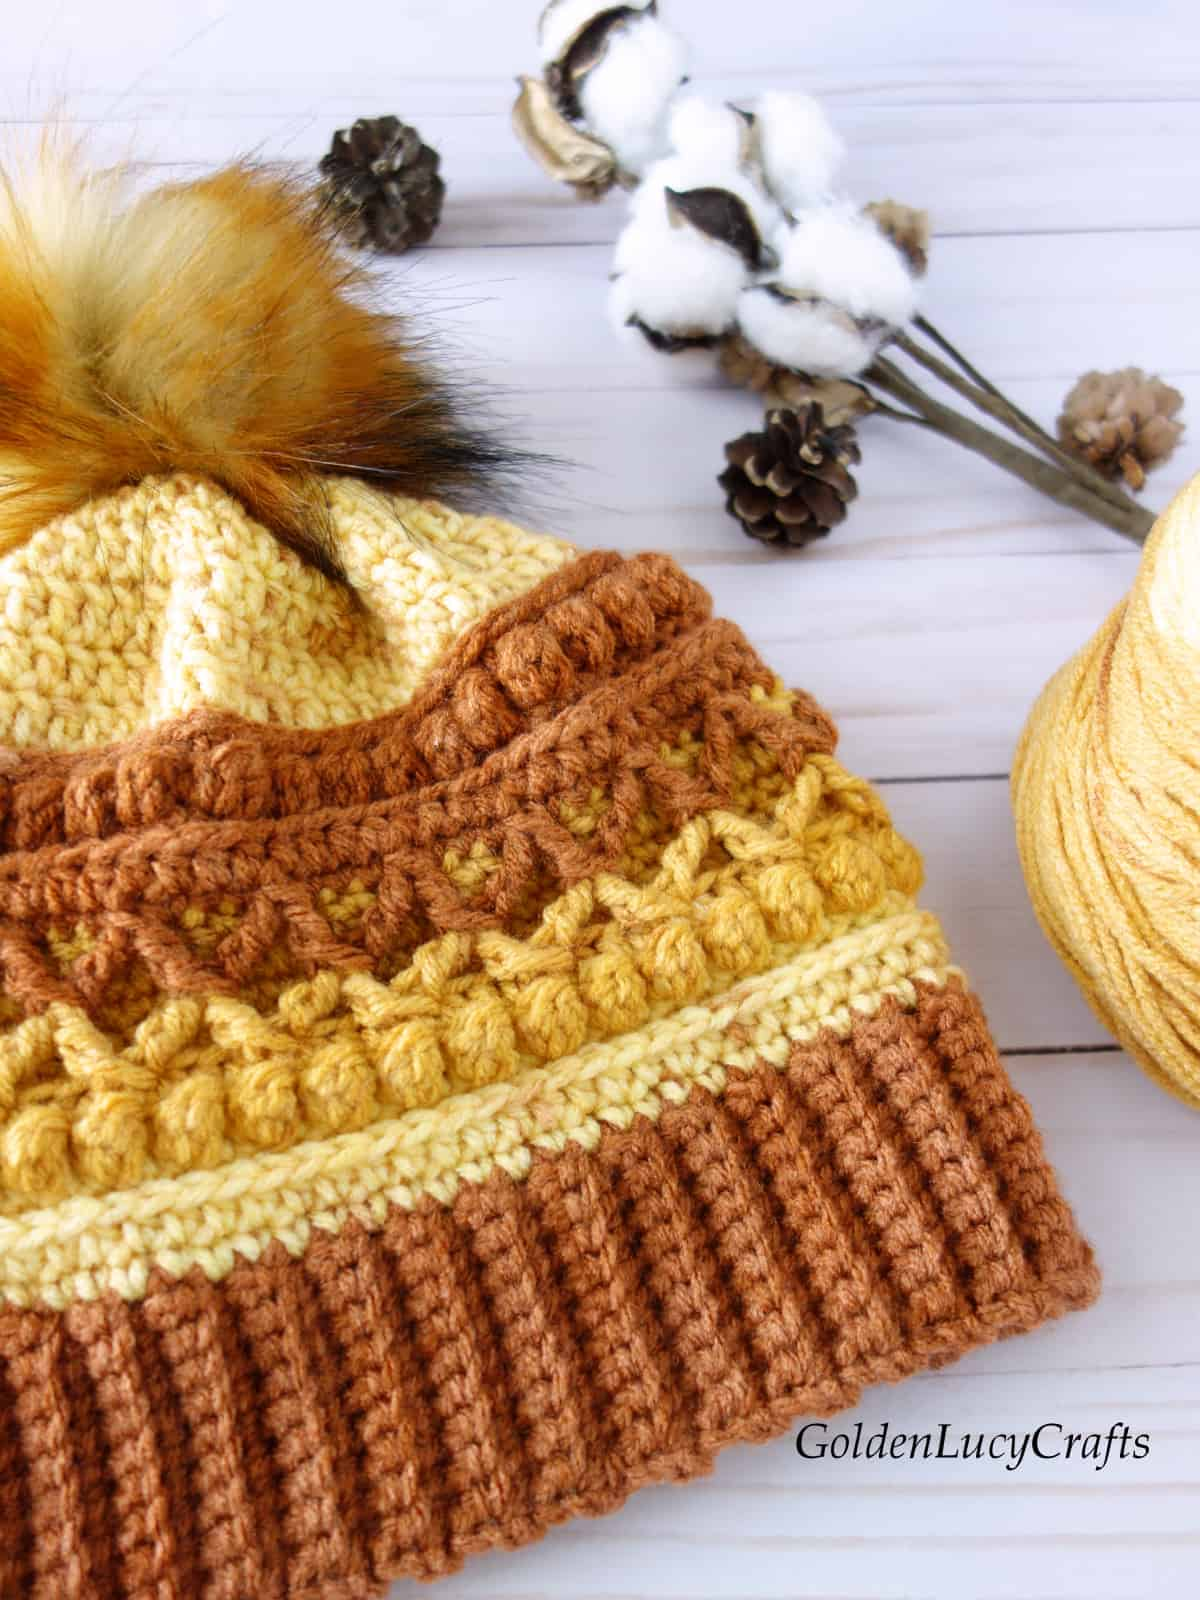 Crocheted hat in brown, orange and yellow colors embellished with fur pompom, ball of yarn, cotton branch, pine cones close up picture.